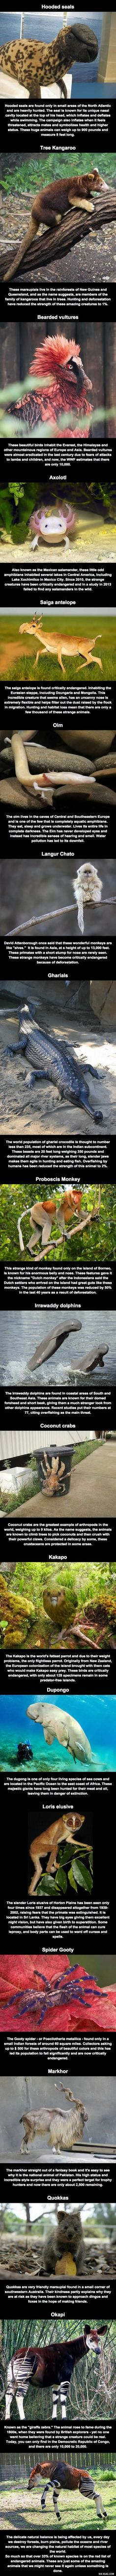 20 Animals You Probably Don't Know Exist, That Likely Will Be Extinct Before You Die - grabberwocky